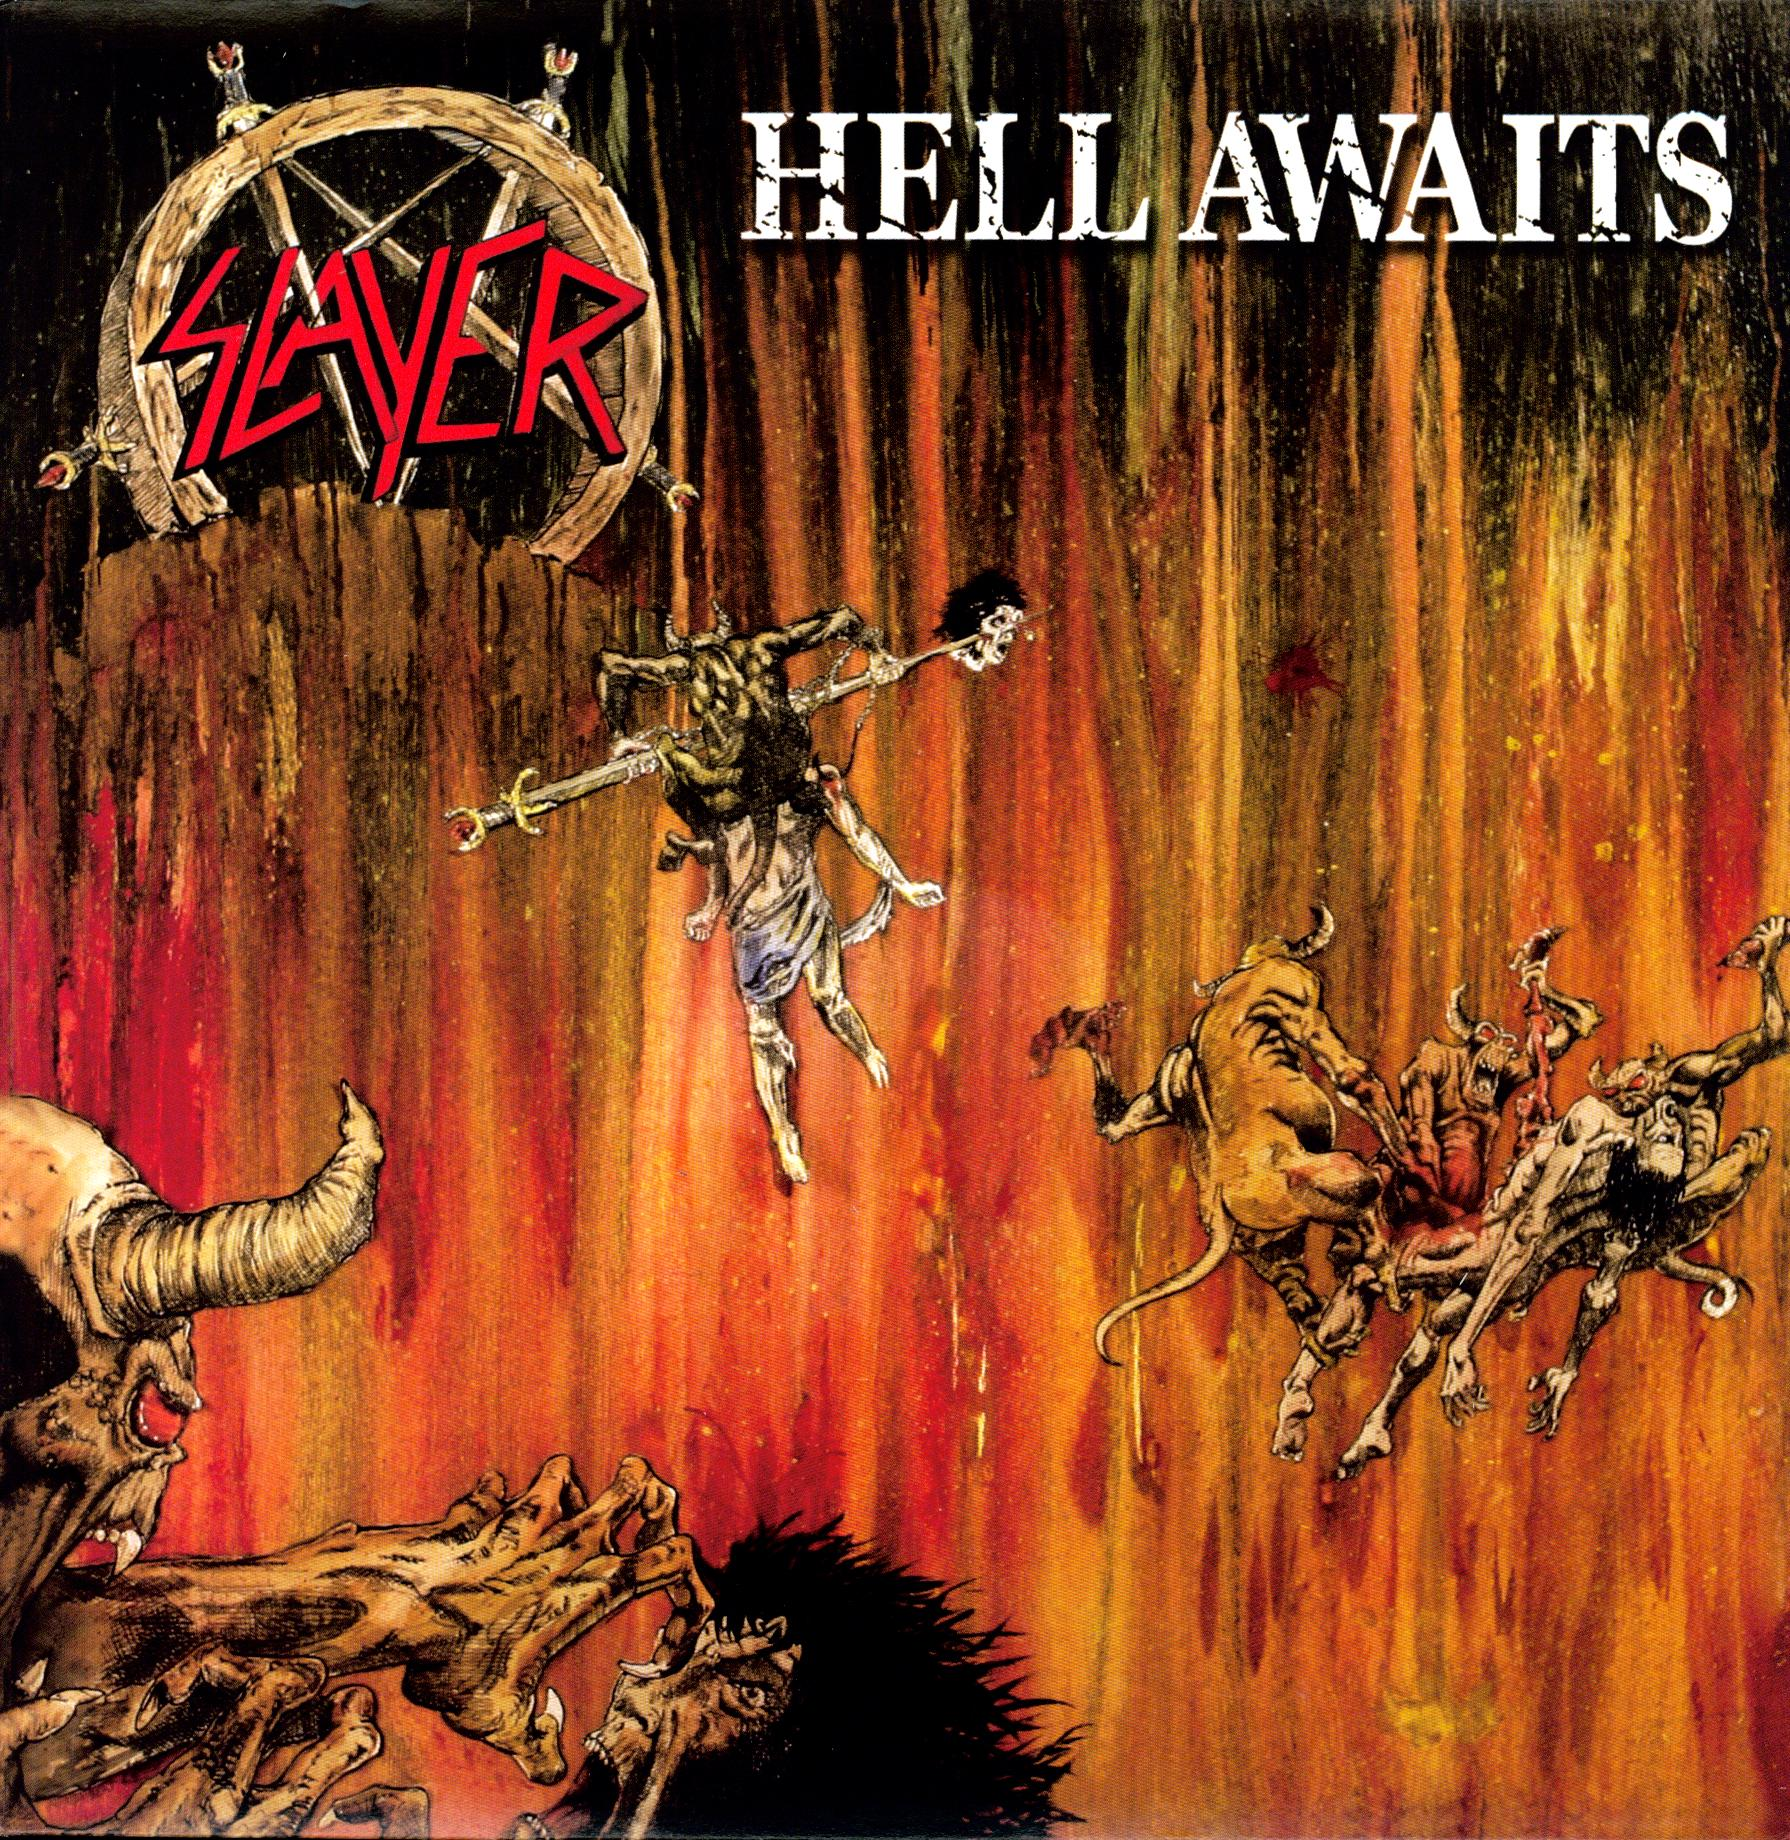 cover-slayer02.jpg